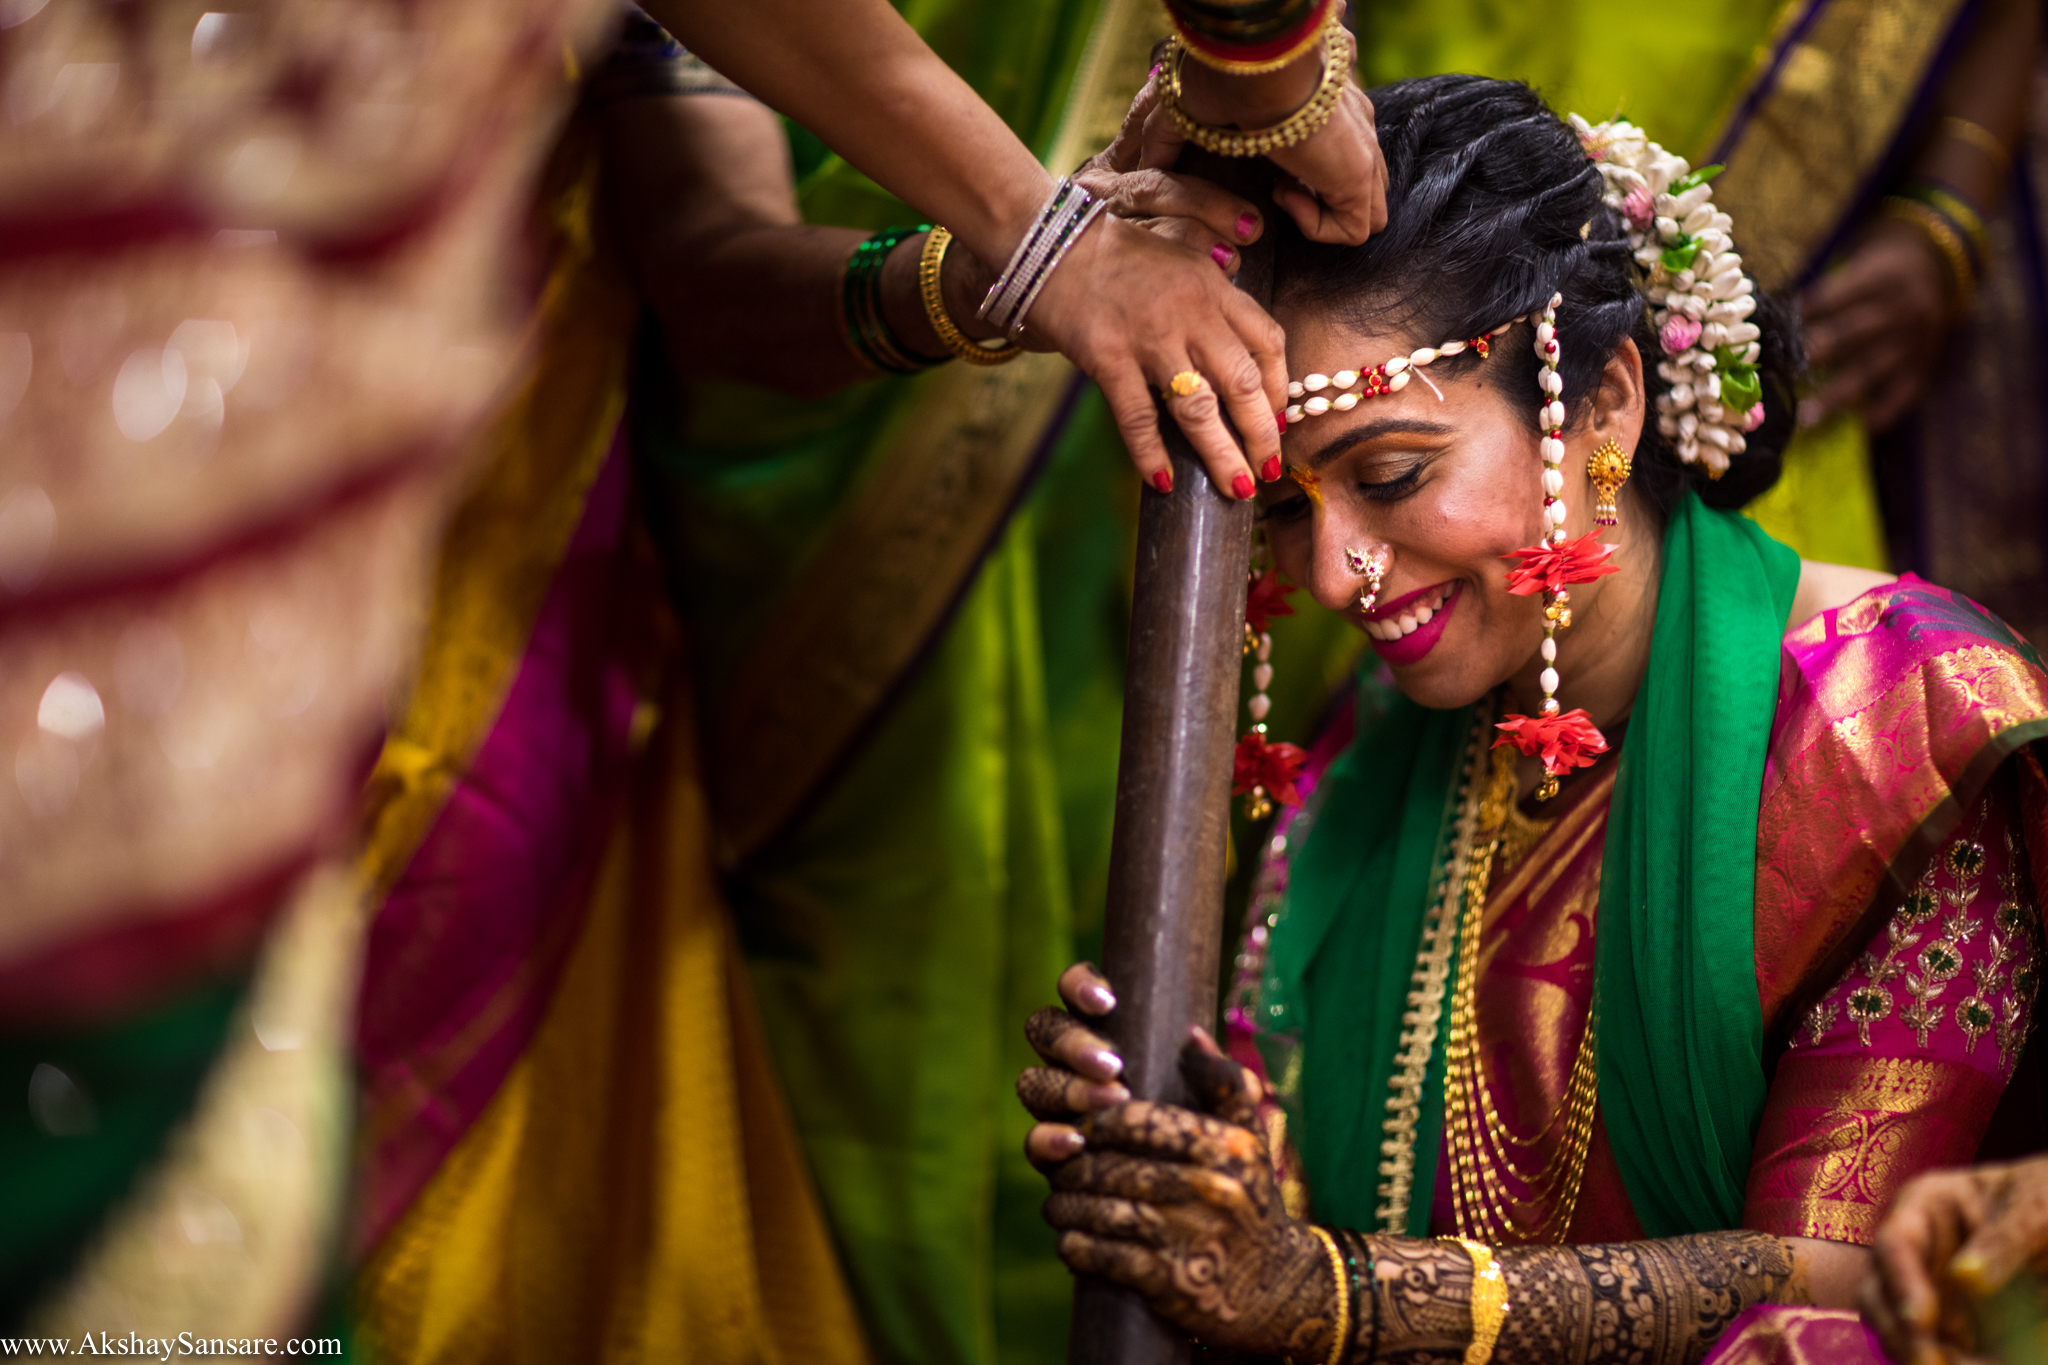 Nupur & Rohan wedding Akshay Sansare Photography best wedding photographer in mumbai India Candid(29).jpg